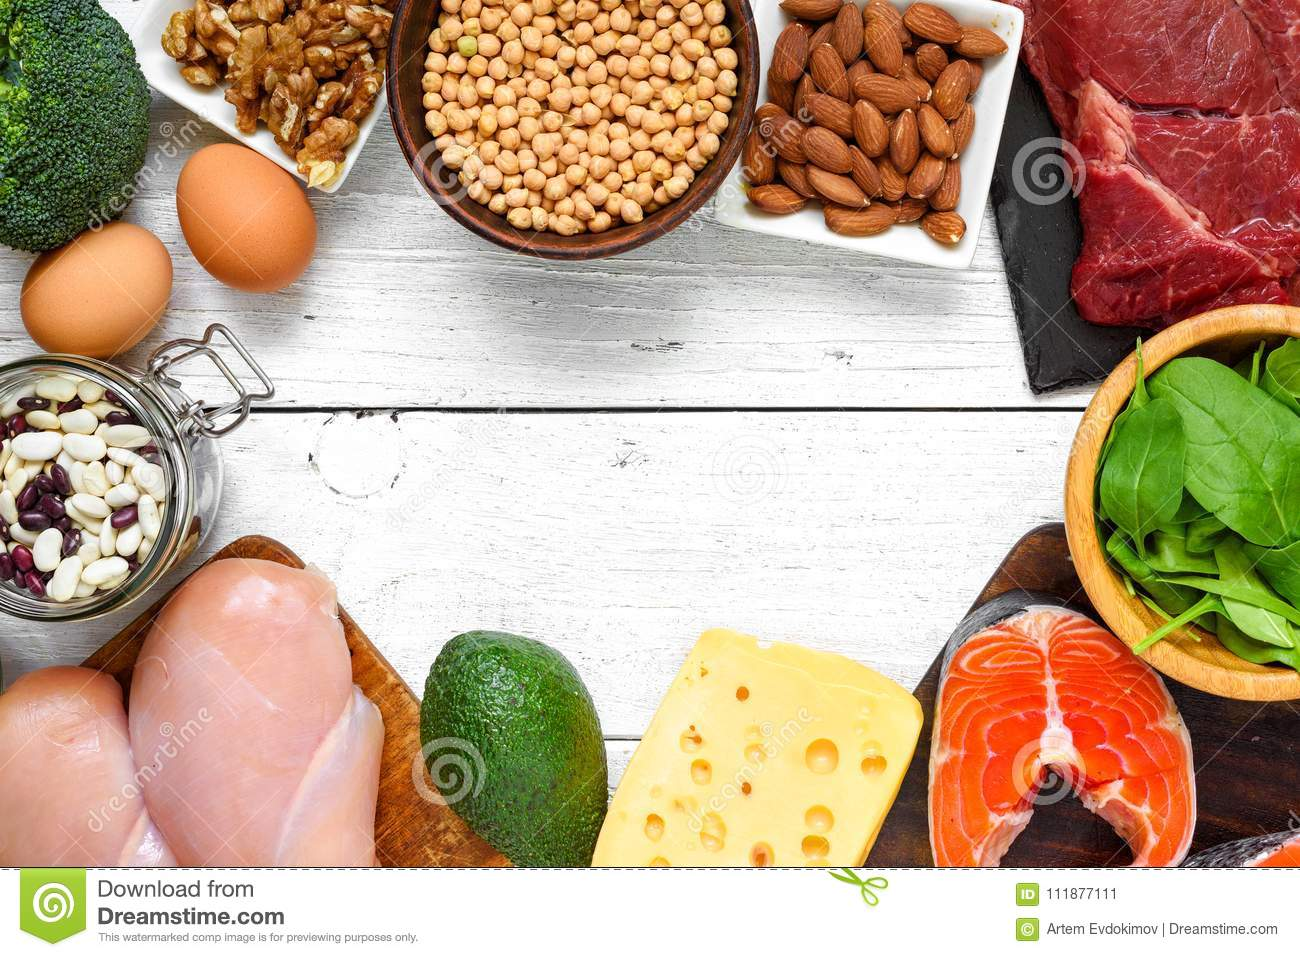 High Protein Food Fish Meat Poultry Nuts Eggs And Vegetables On